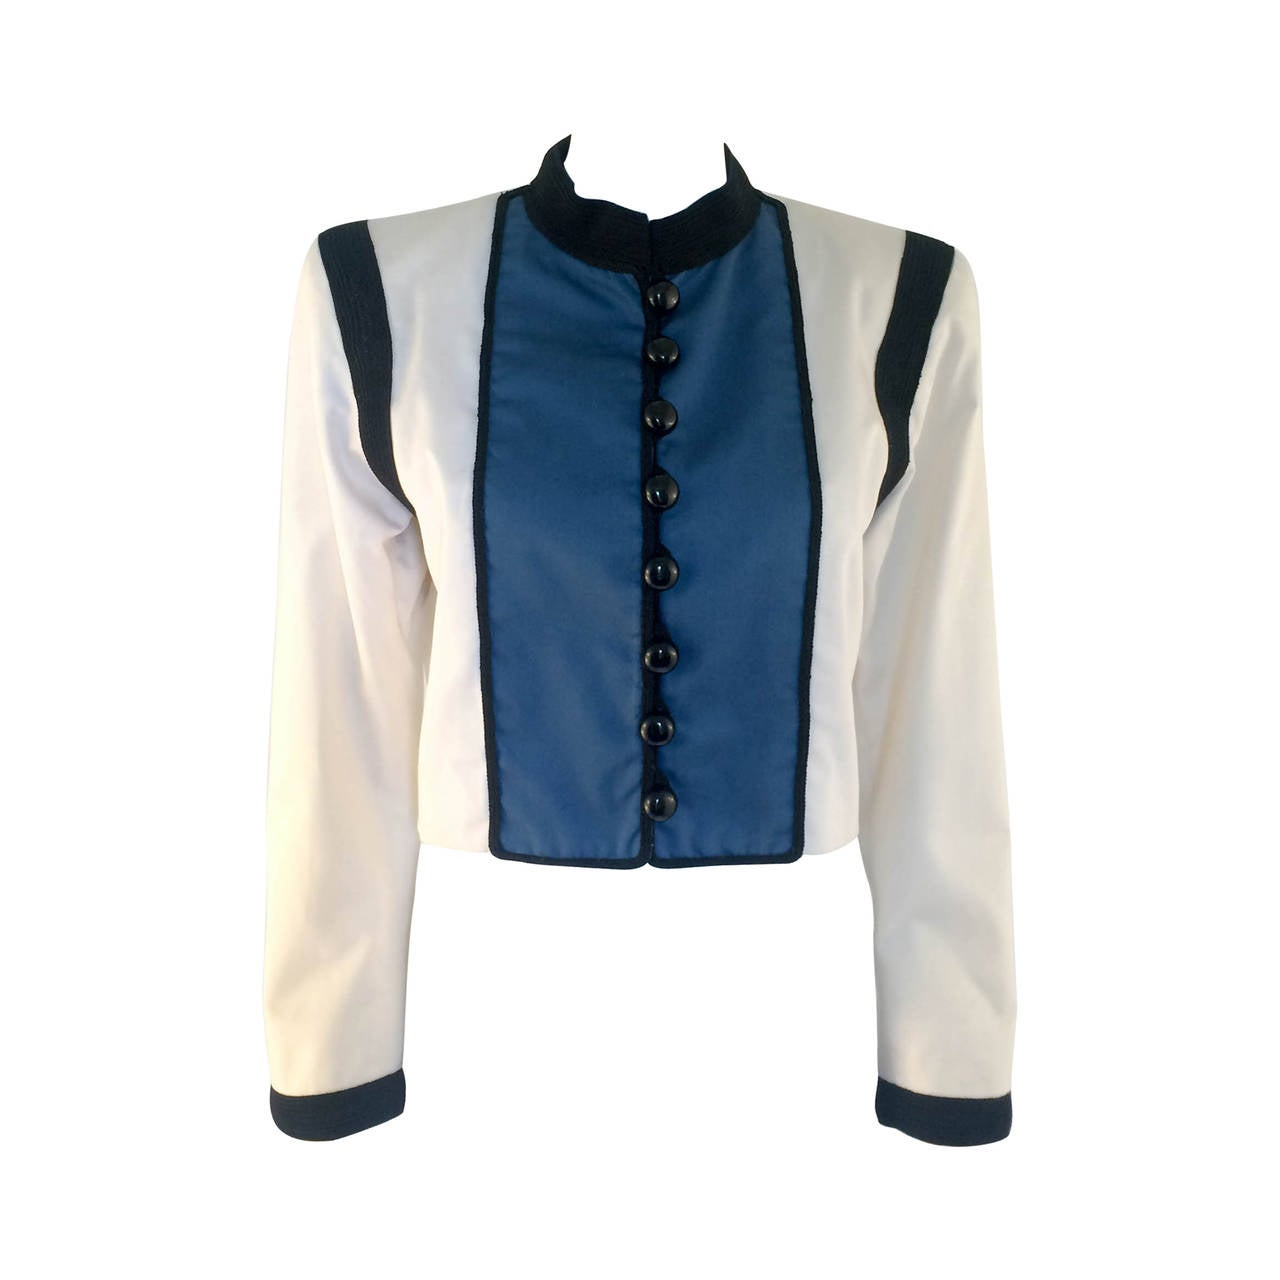 fdc59a3b5ee Yves Saint Laurent Jacket - 1980s at 1stdibs